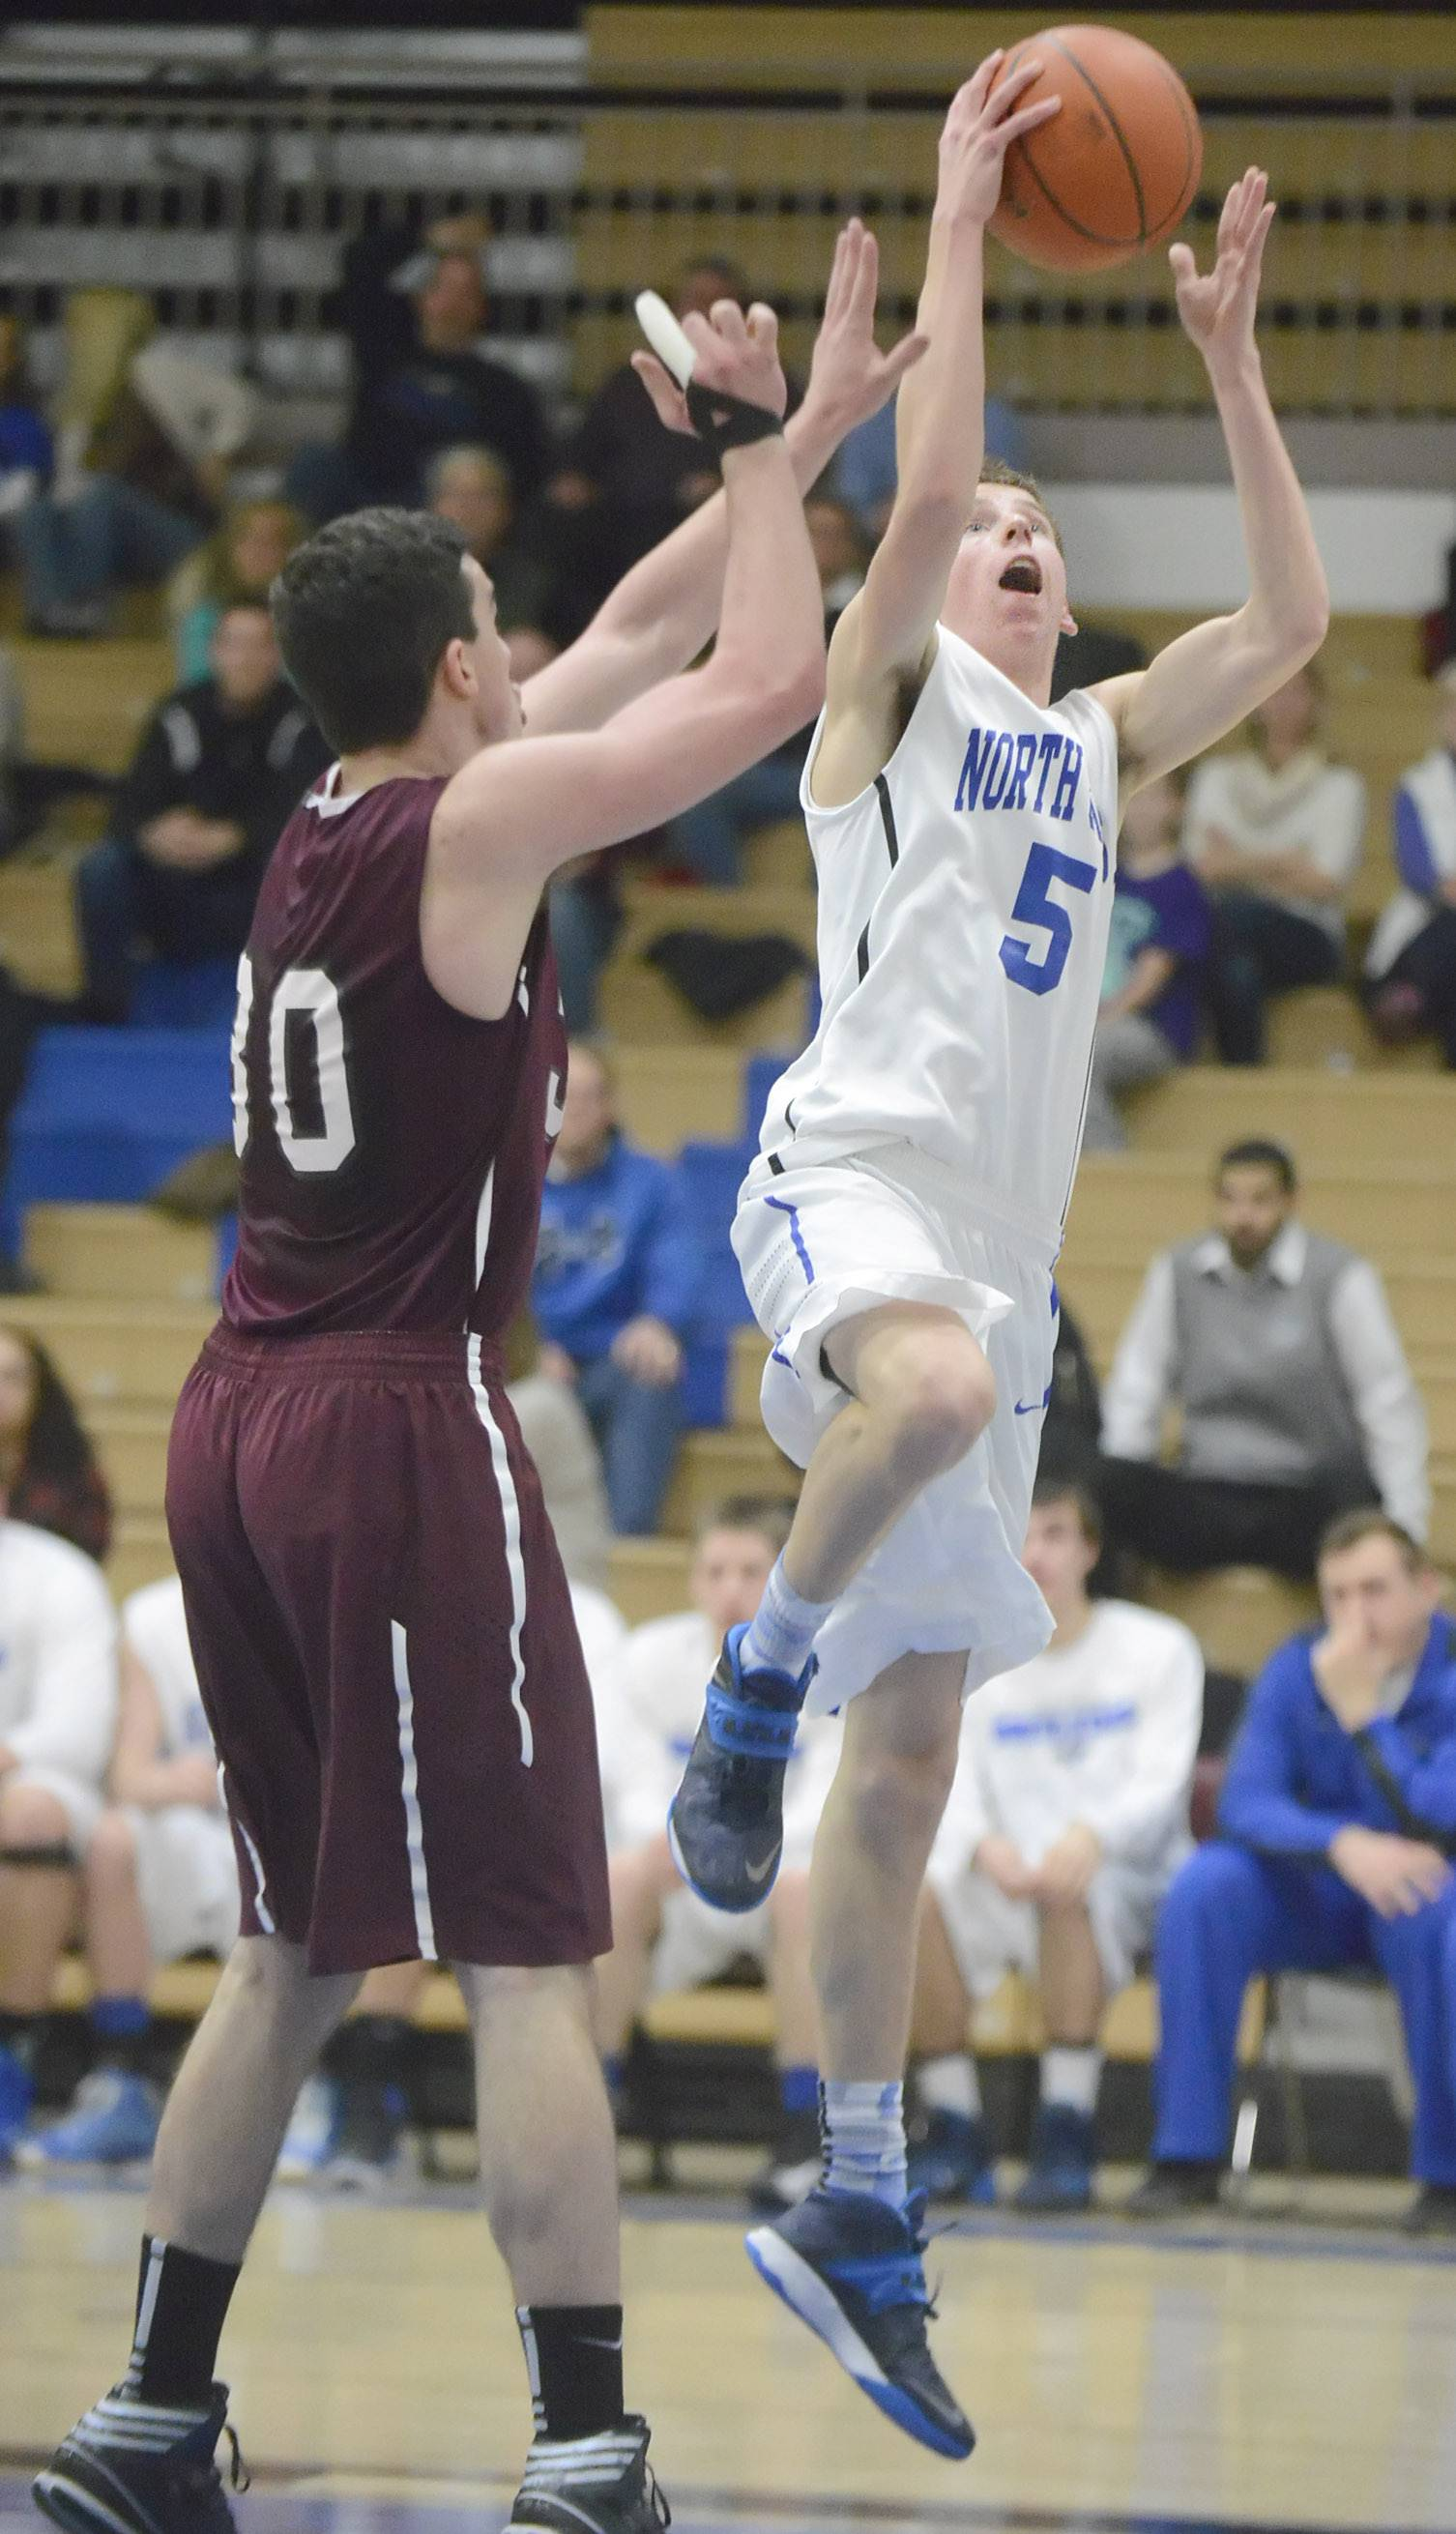 Elgin's Kiko Mari tries to block St. Charles North's Tyler DeMoss in the fourth quarter on Tuesday, February 11.